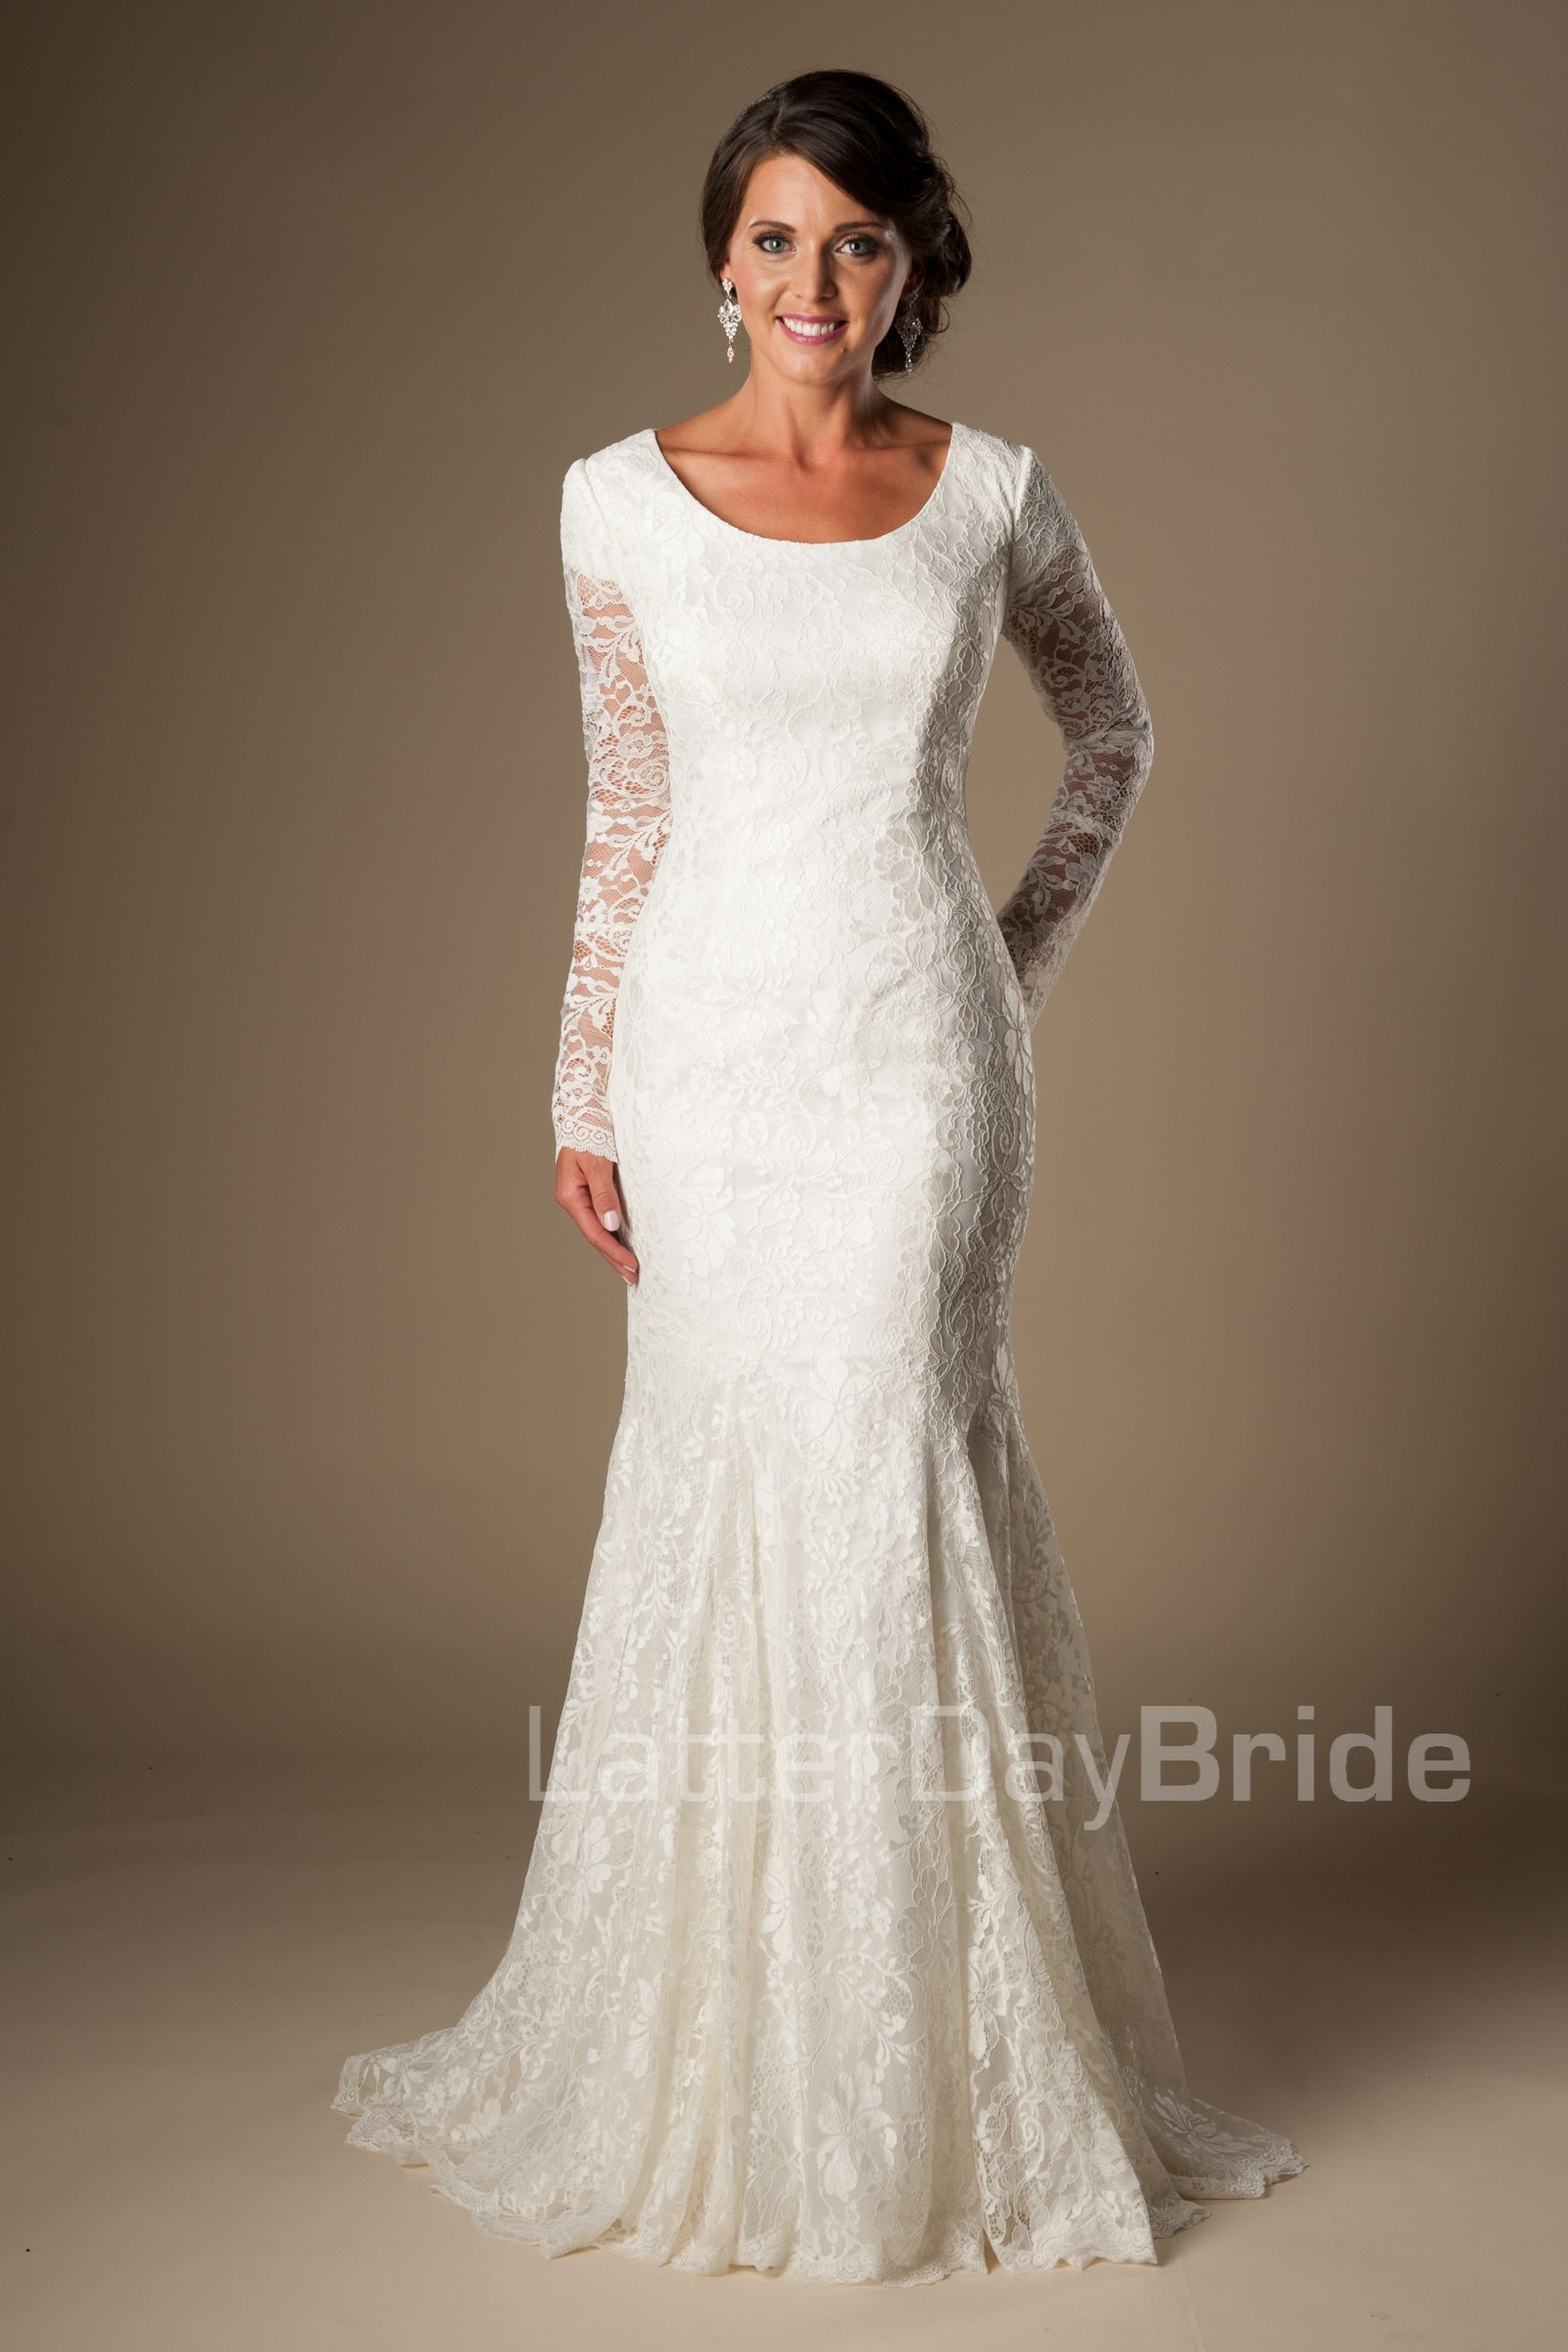 Complete Your Wedding With This Amazing Long Sleeved Modest Gown Illusion Lace Sleeves A Mermaid Fit And Stunning Sweep Train